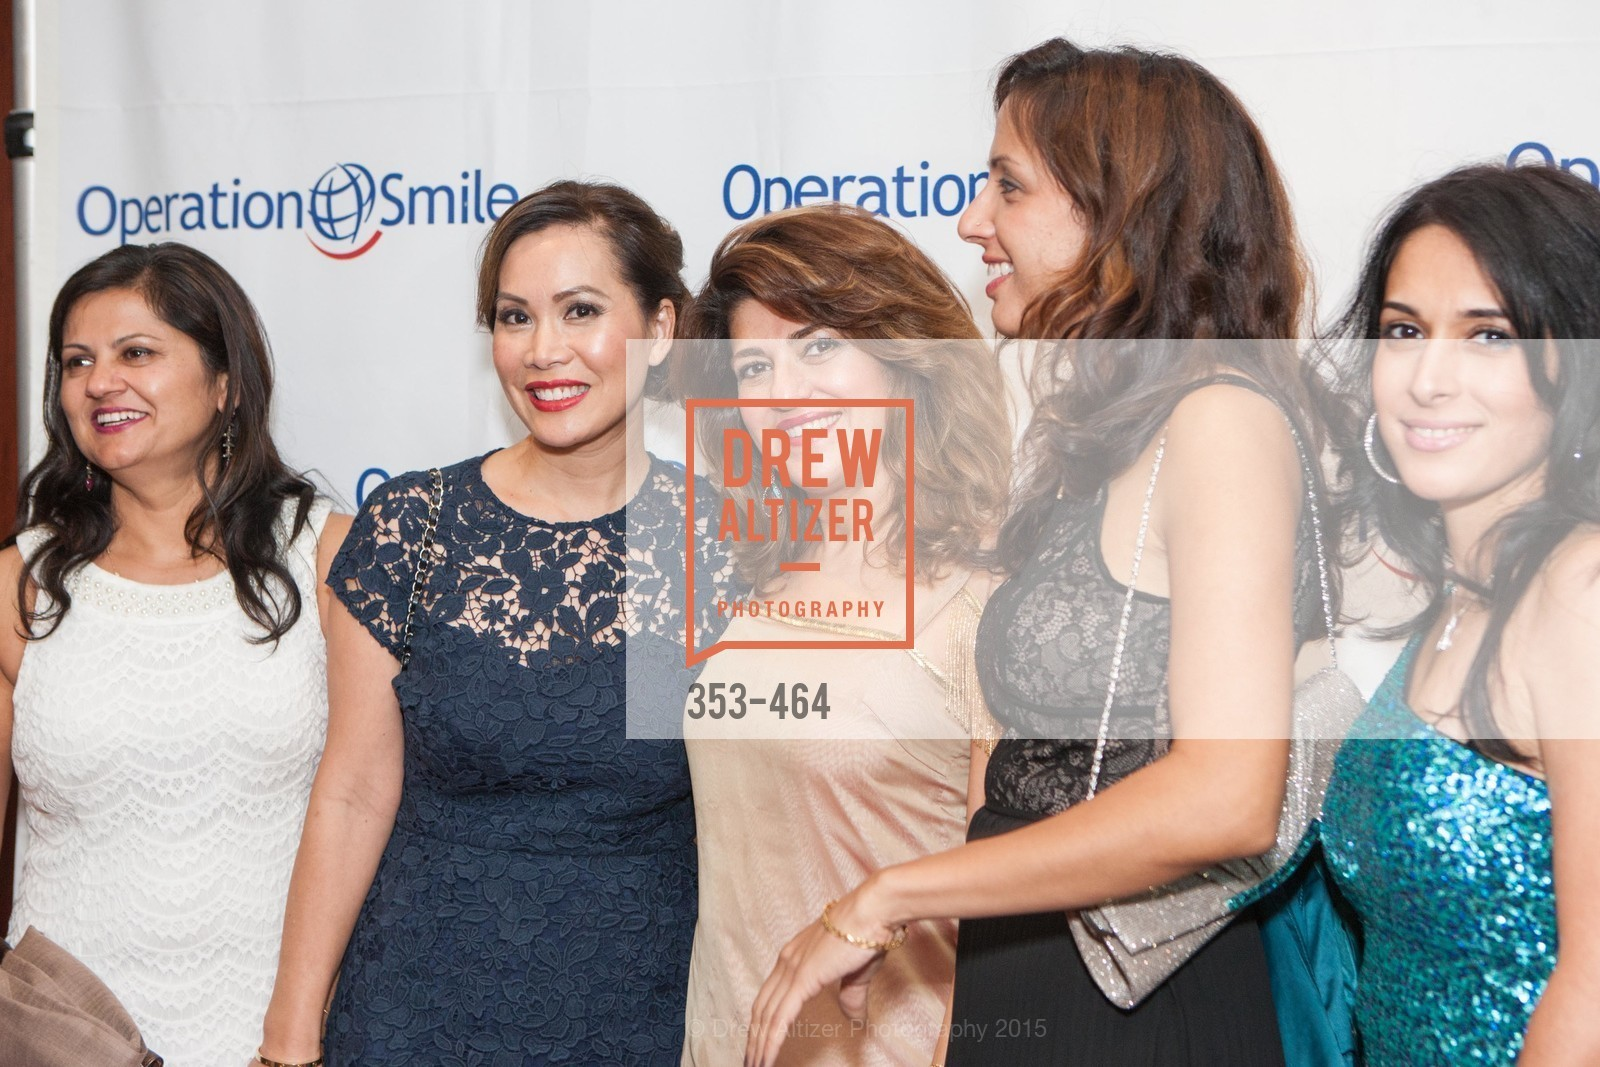 Step & Repeat, Operation Smile Presents THE SAN FRANCISCO 2015 SMILE GALA, November 7th, 2015, Photo,Drew Altizer, Drew Altizer Photography, full-service agency, private events, San Francisco photographer, photographer california